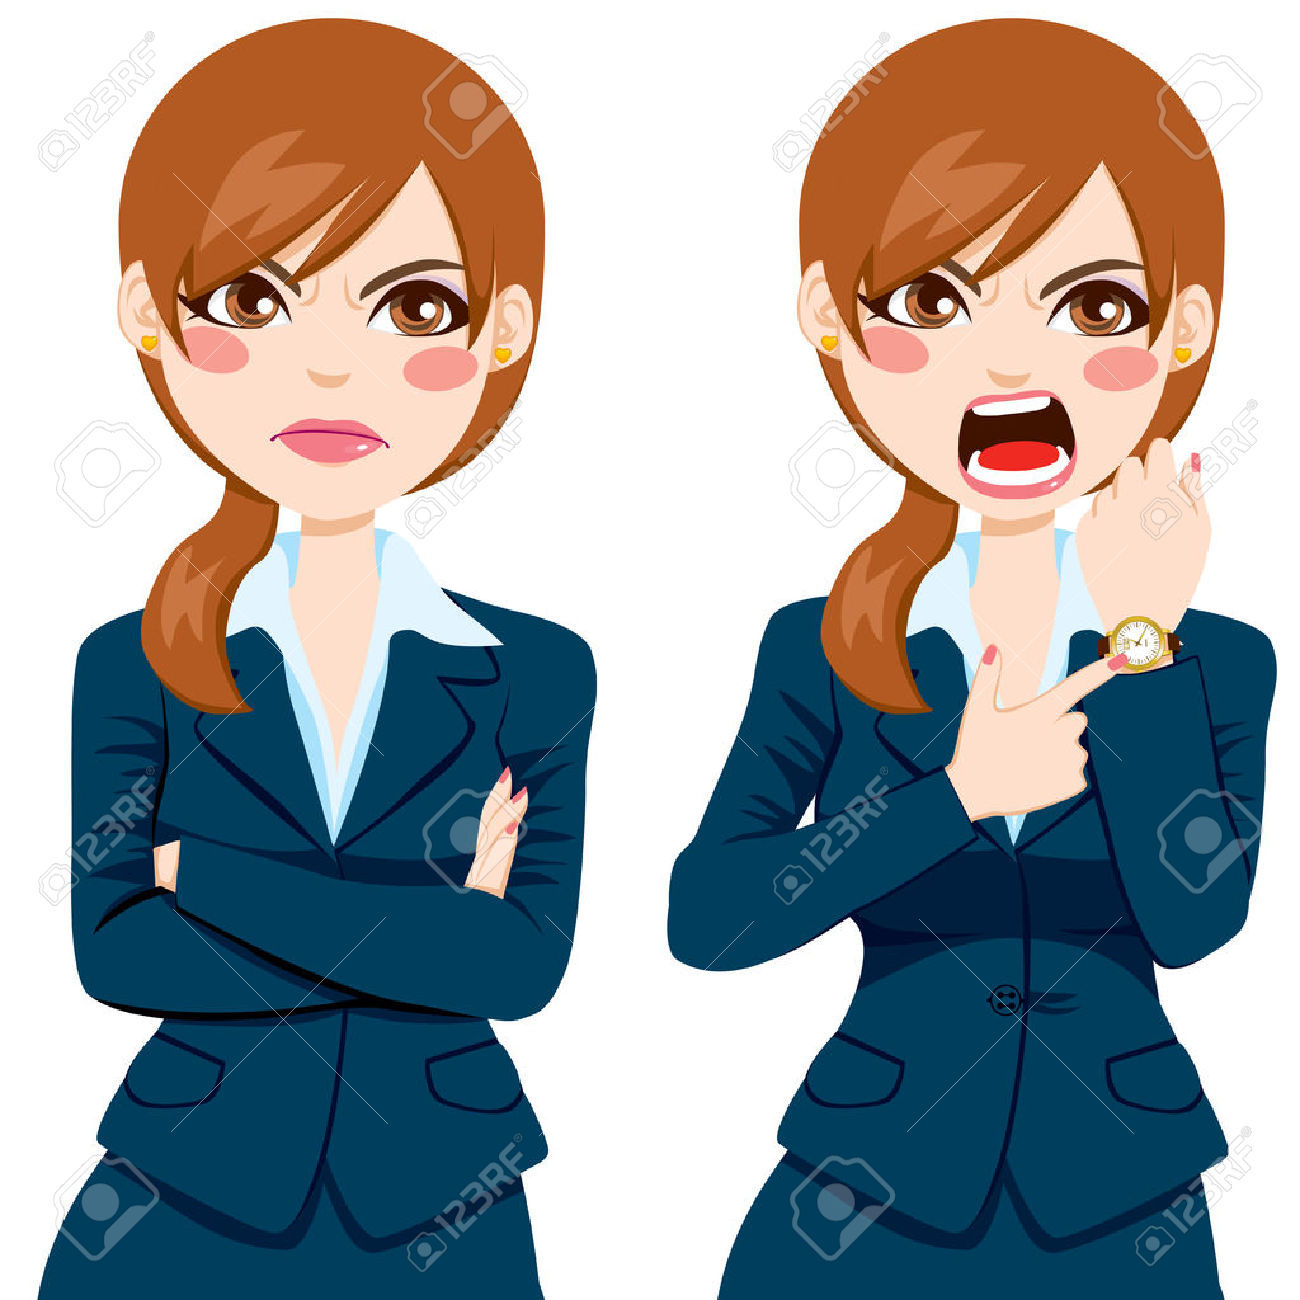 Angry clipart angry lady, Angry angry lady Transparent FREE.